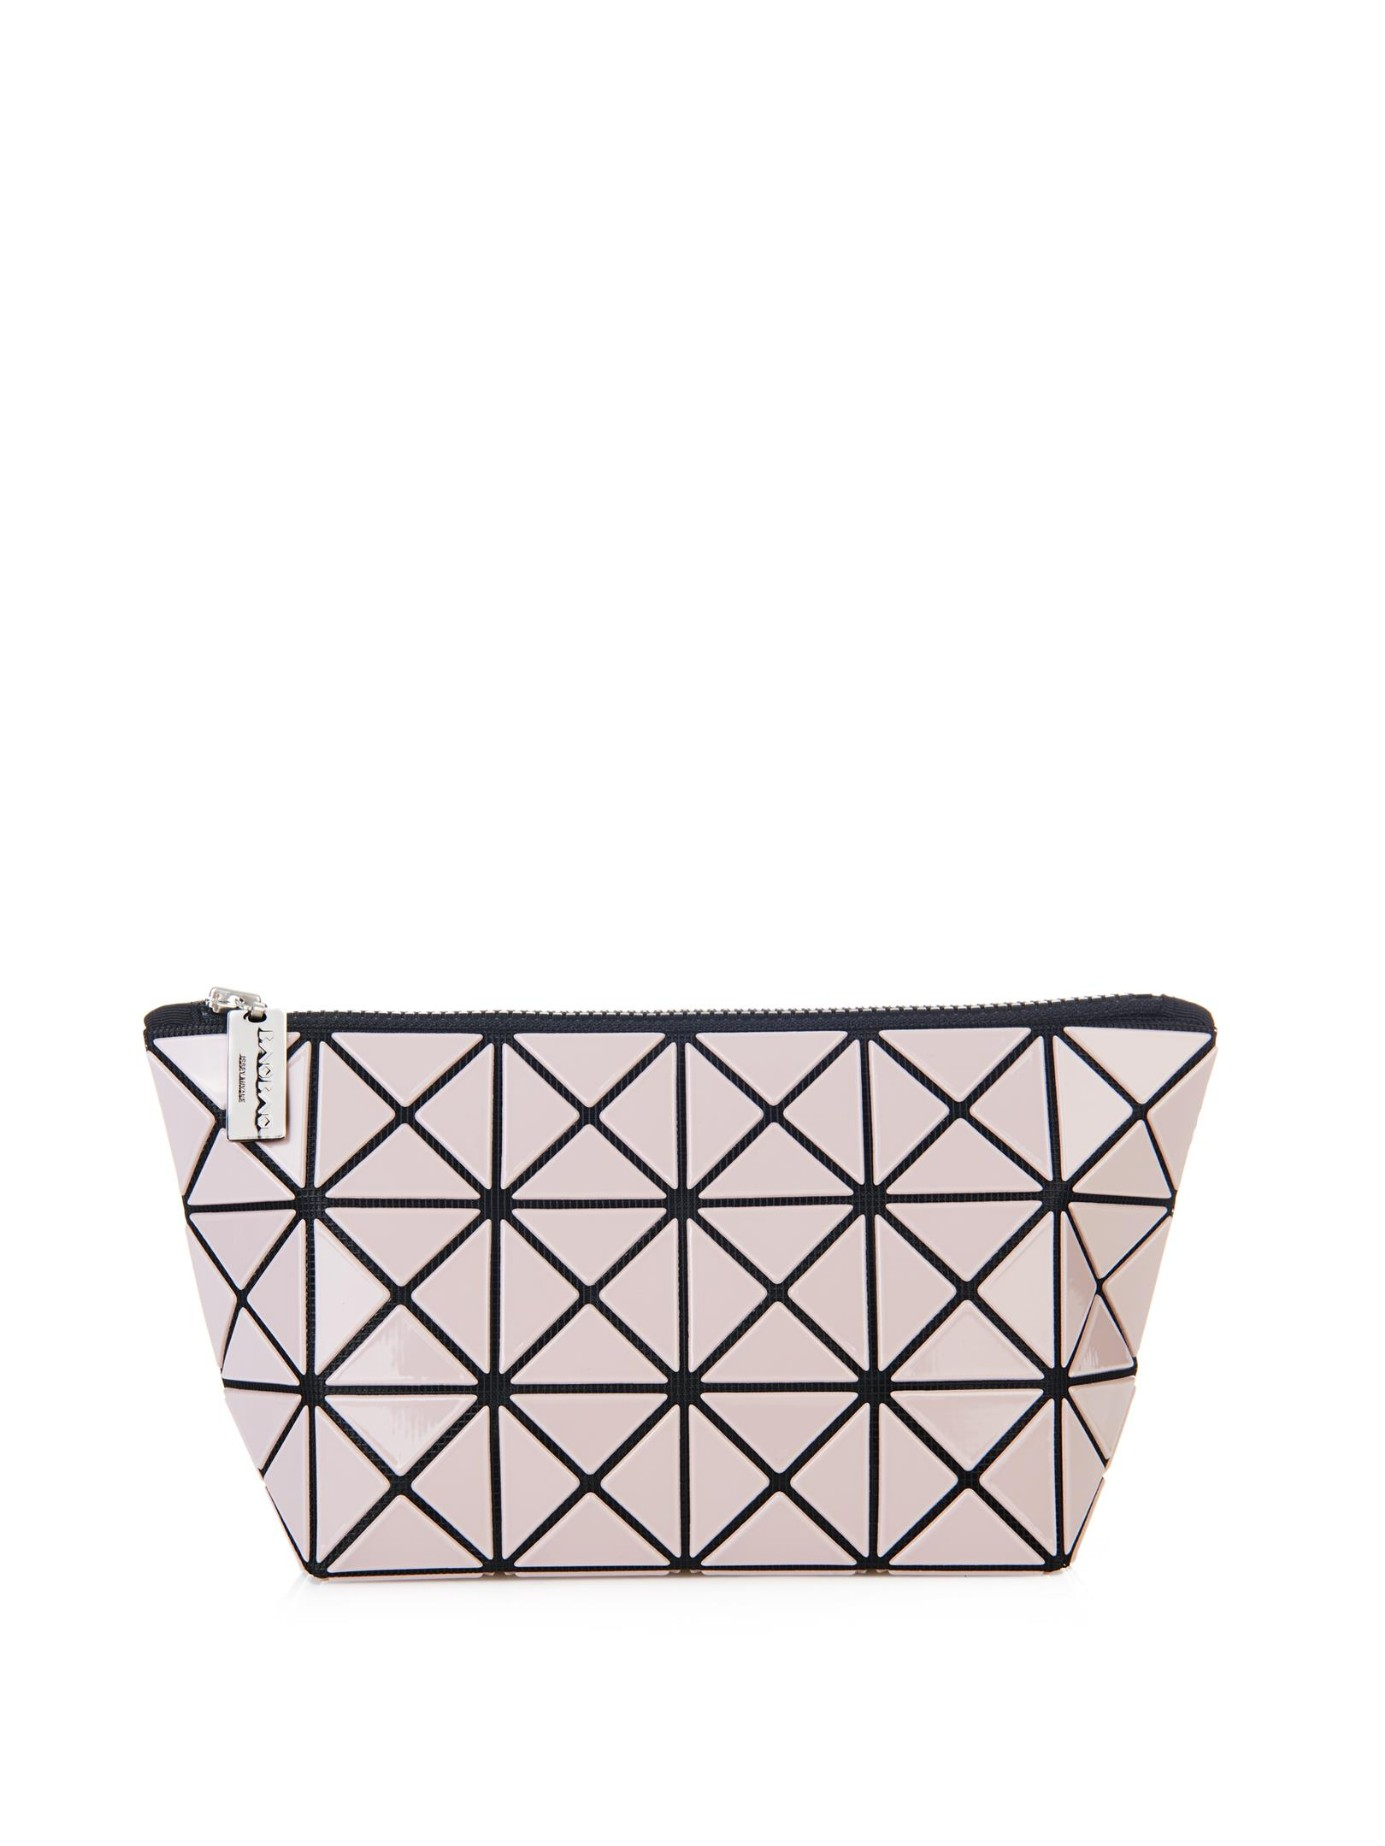 Lyst - Bao Bao Issey Miyake Lucent Basic Make-Up Bag in Gray 583dbc3a5a